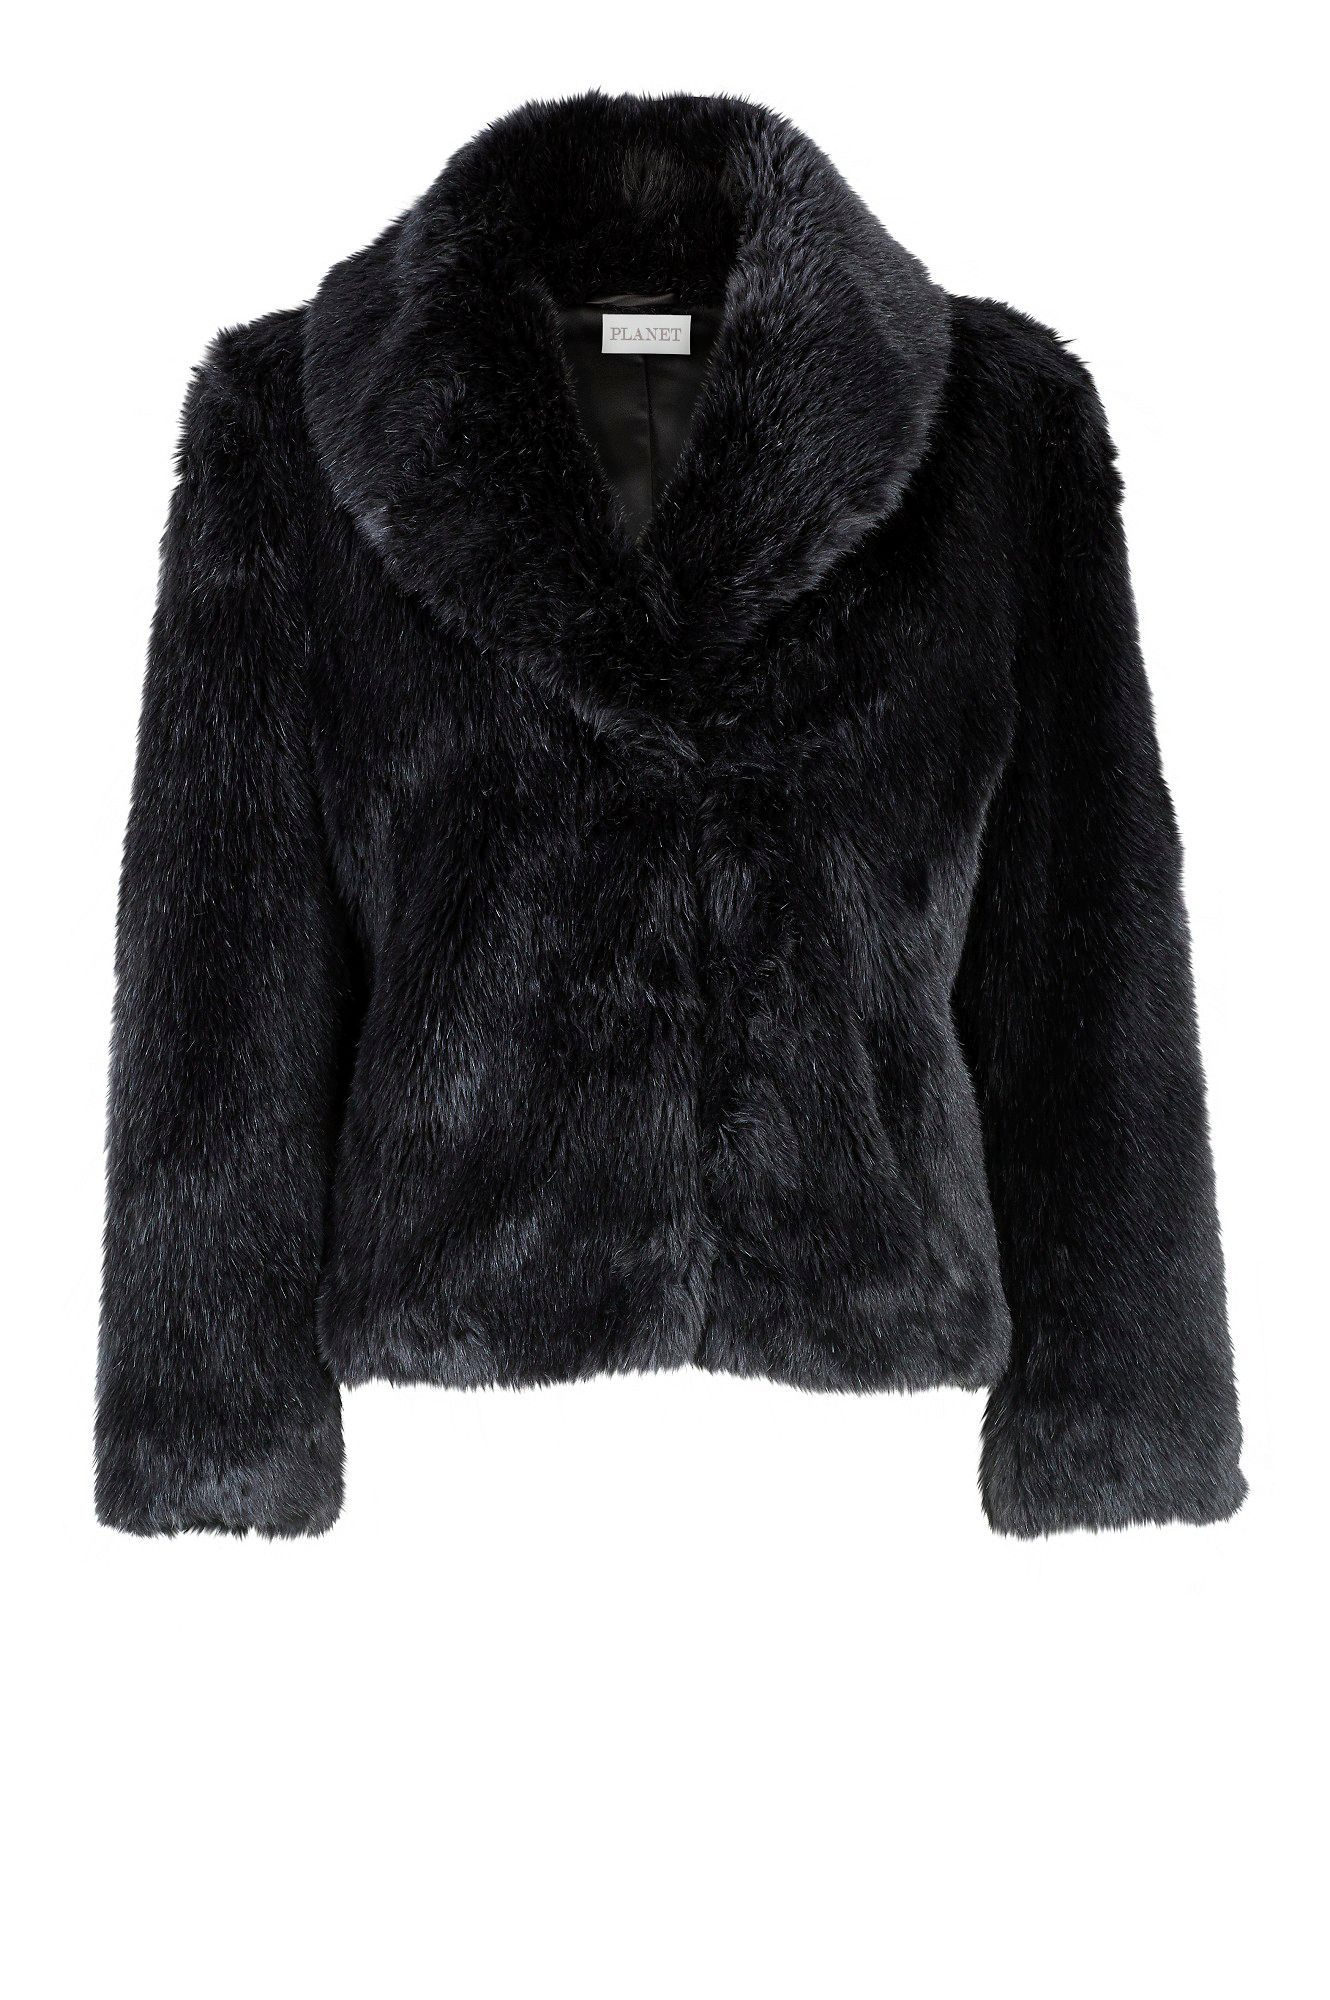 Black soft faux fur coat